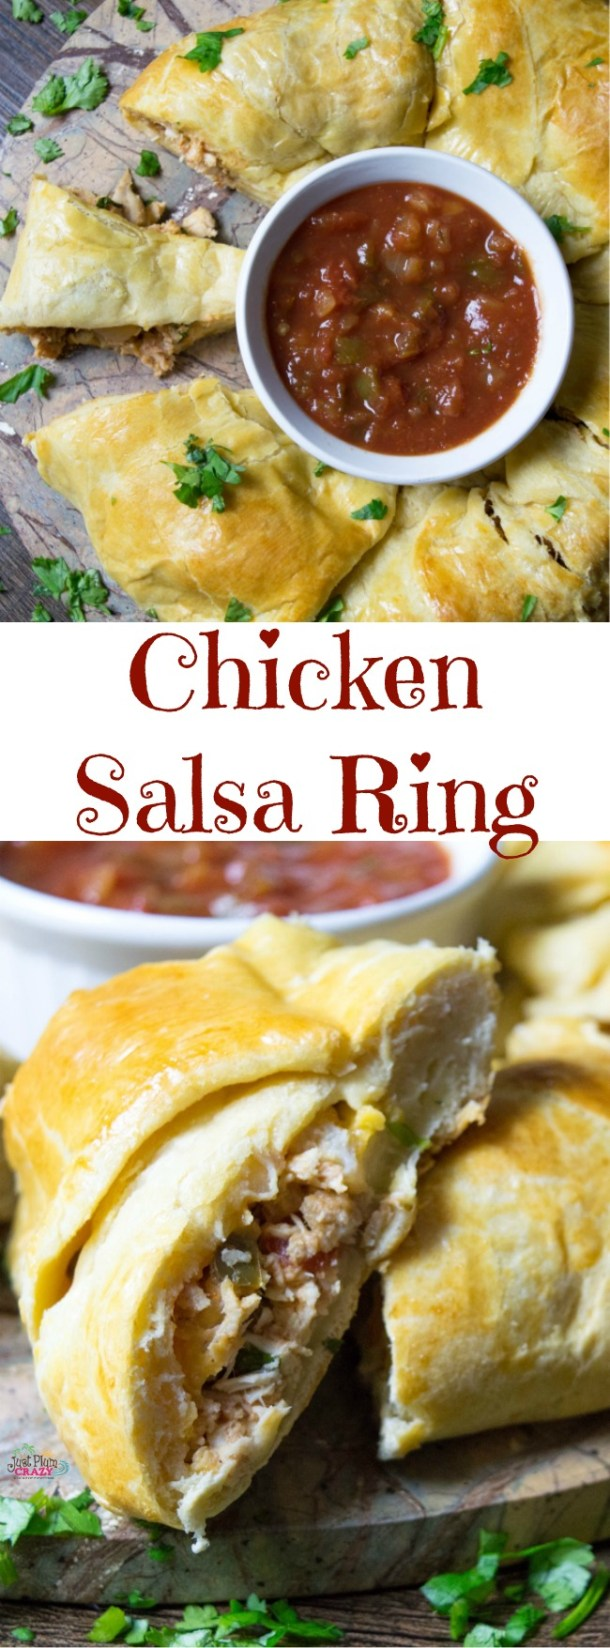 Another perfect recipe for your game day party is the Chicken Salsa Ring Recipe where you can easily substitute rotisserie chicken for the cooked chicken.